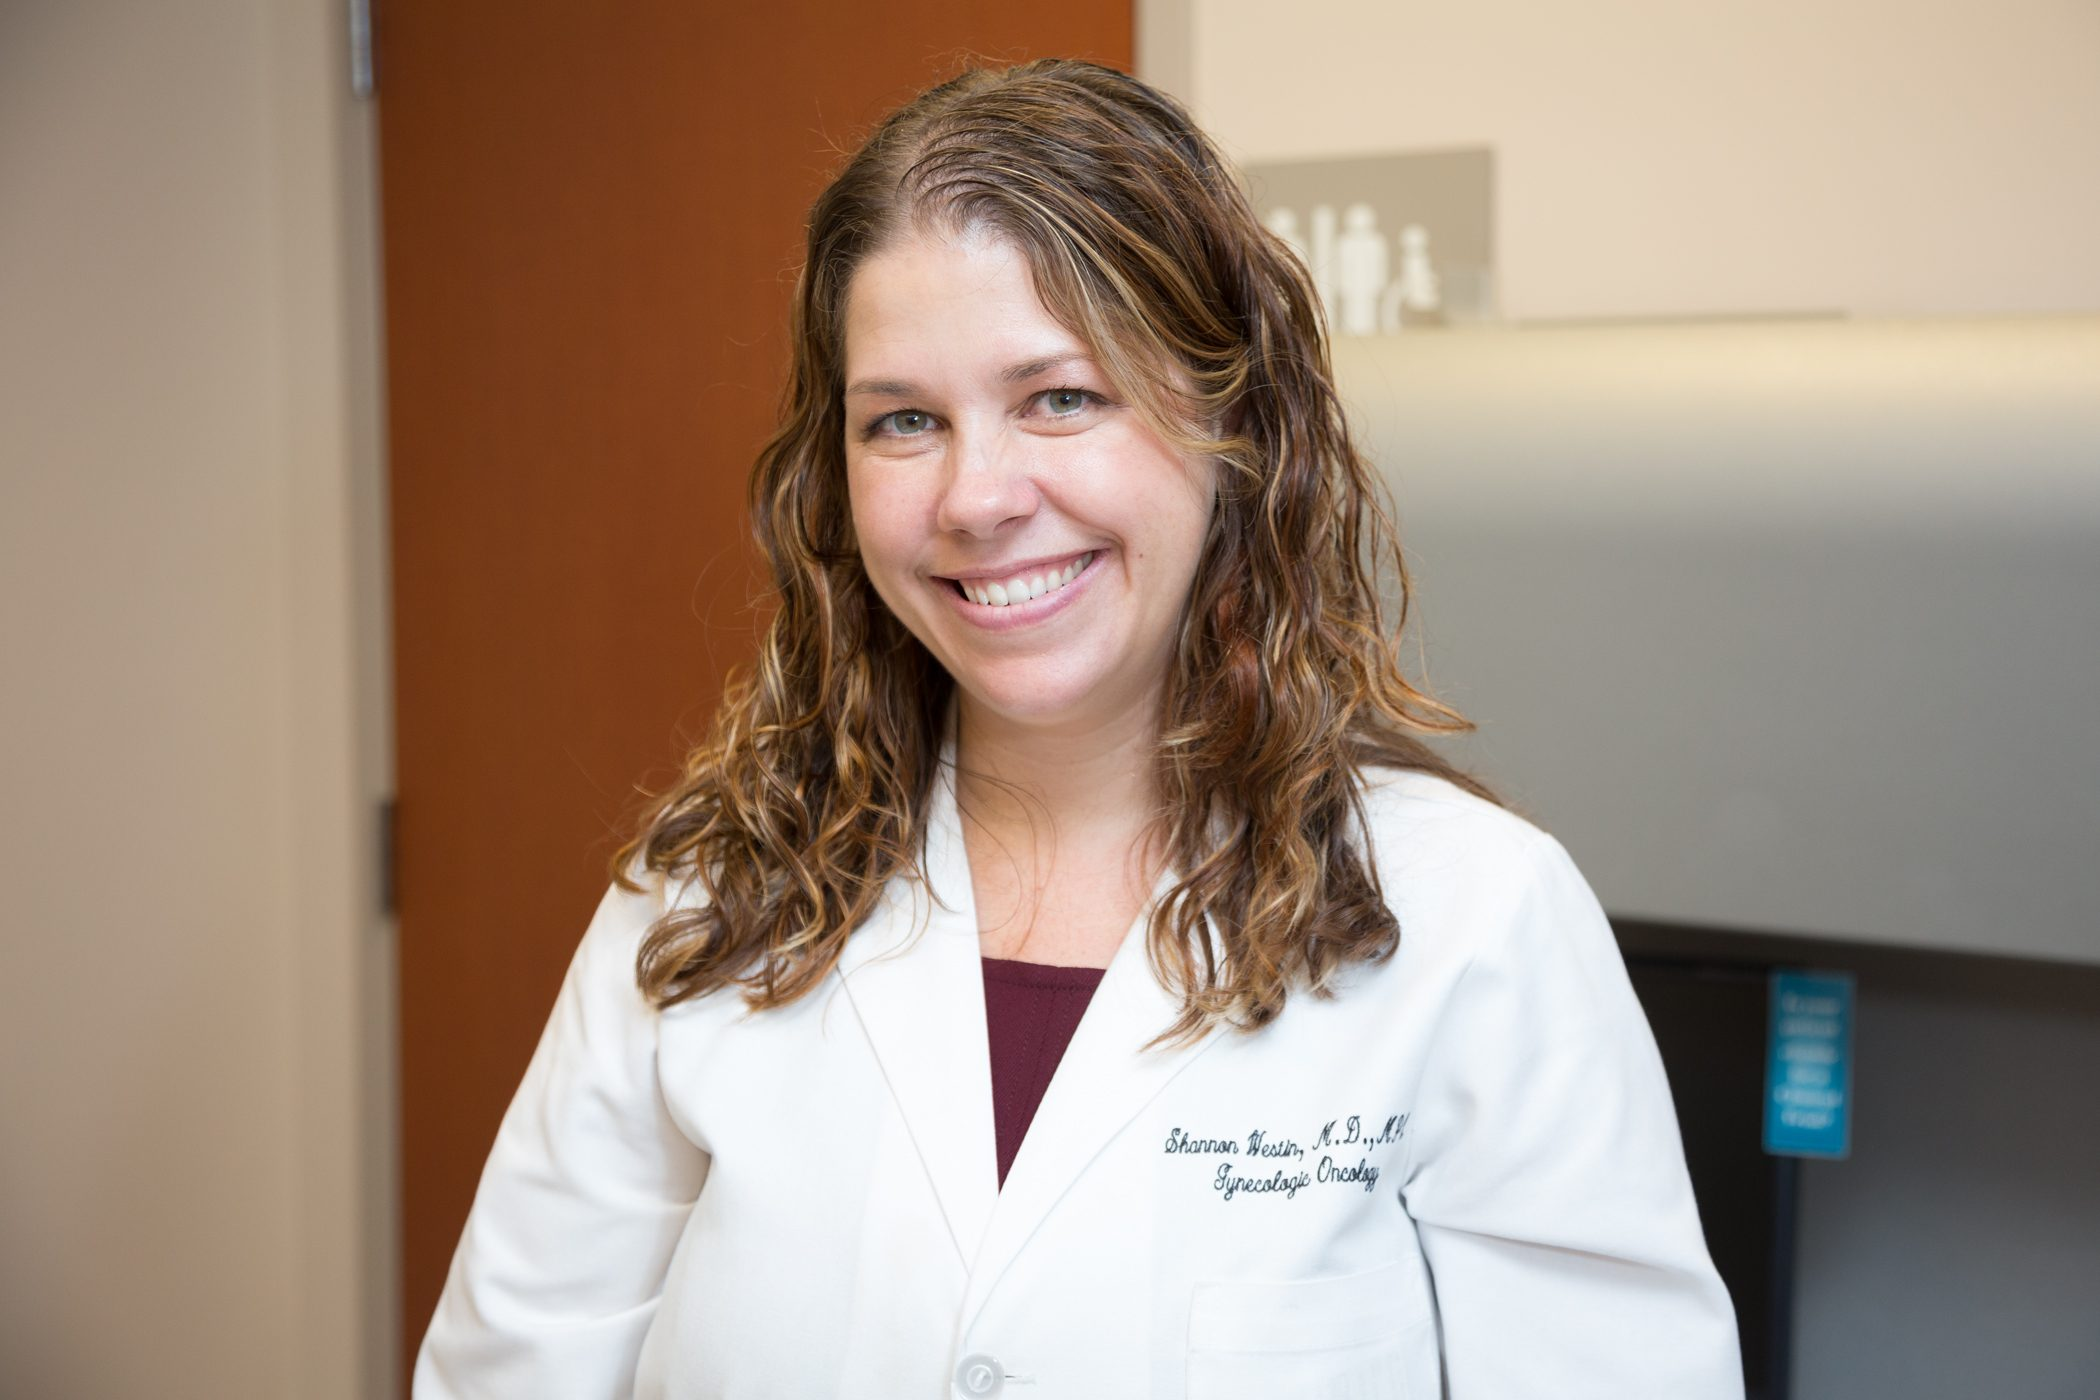 Cancerwise blog post: Shannon Westin, M.D., ovarian cancer, cervical cancer, uterine cancer, vulvar cancer, vaginal cancer, HPV, clinical trials, ovarian cancer clinical trials, immunotherapy, vaccines